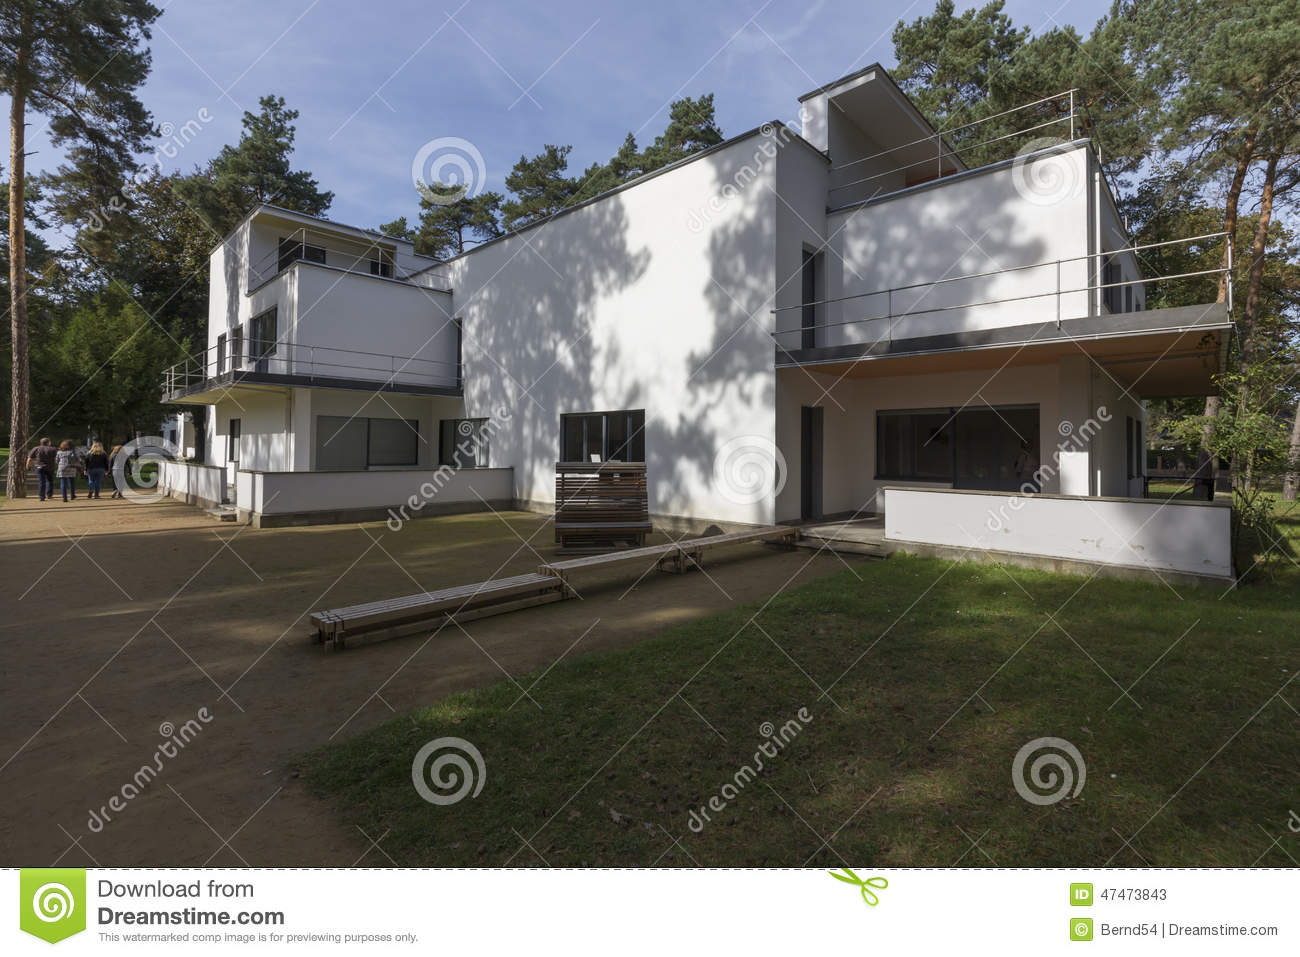 Bauhaus Villa Bauhaus Villa Editorial Stock Photo Image Of Buildings 47473843